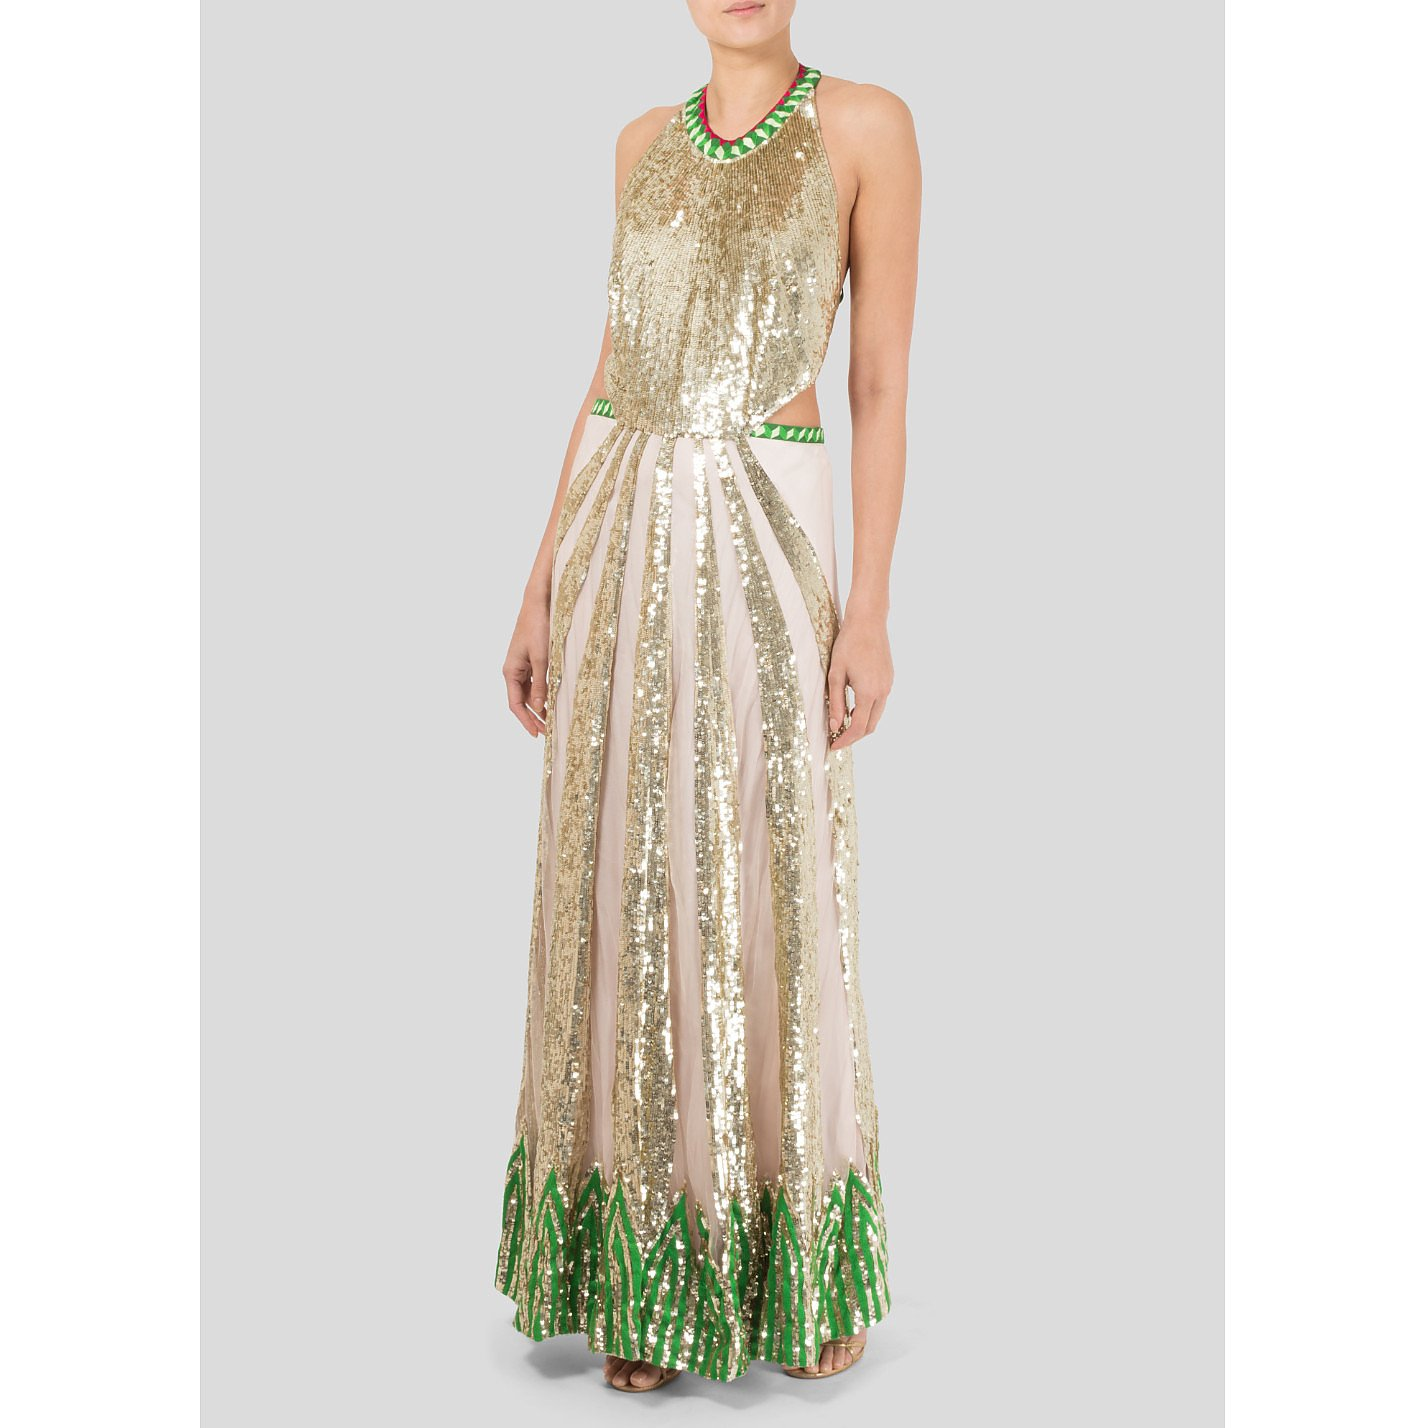 Temperley London Sycamore Gown